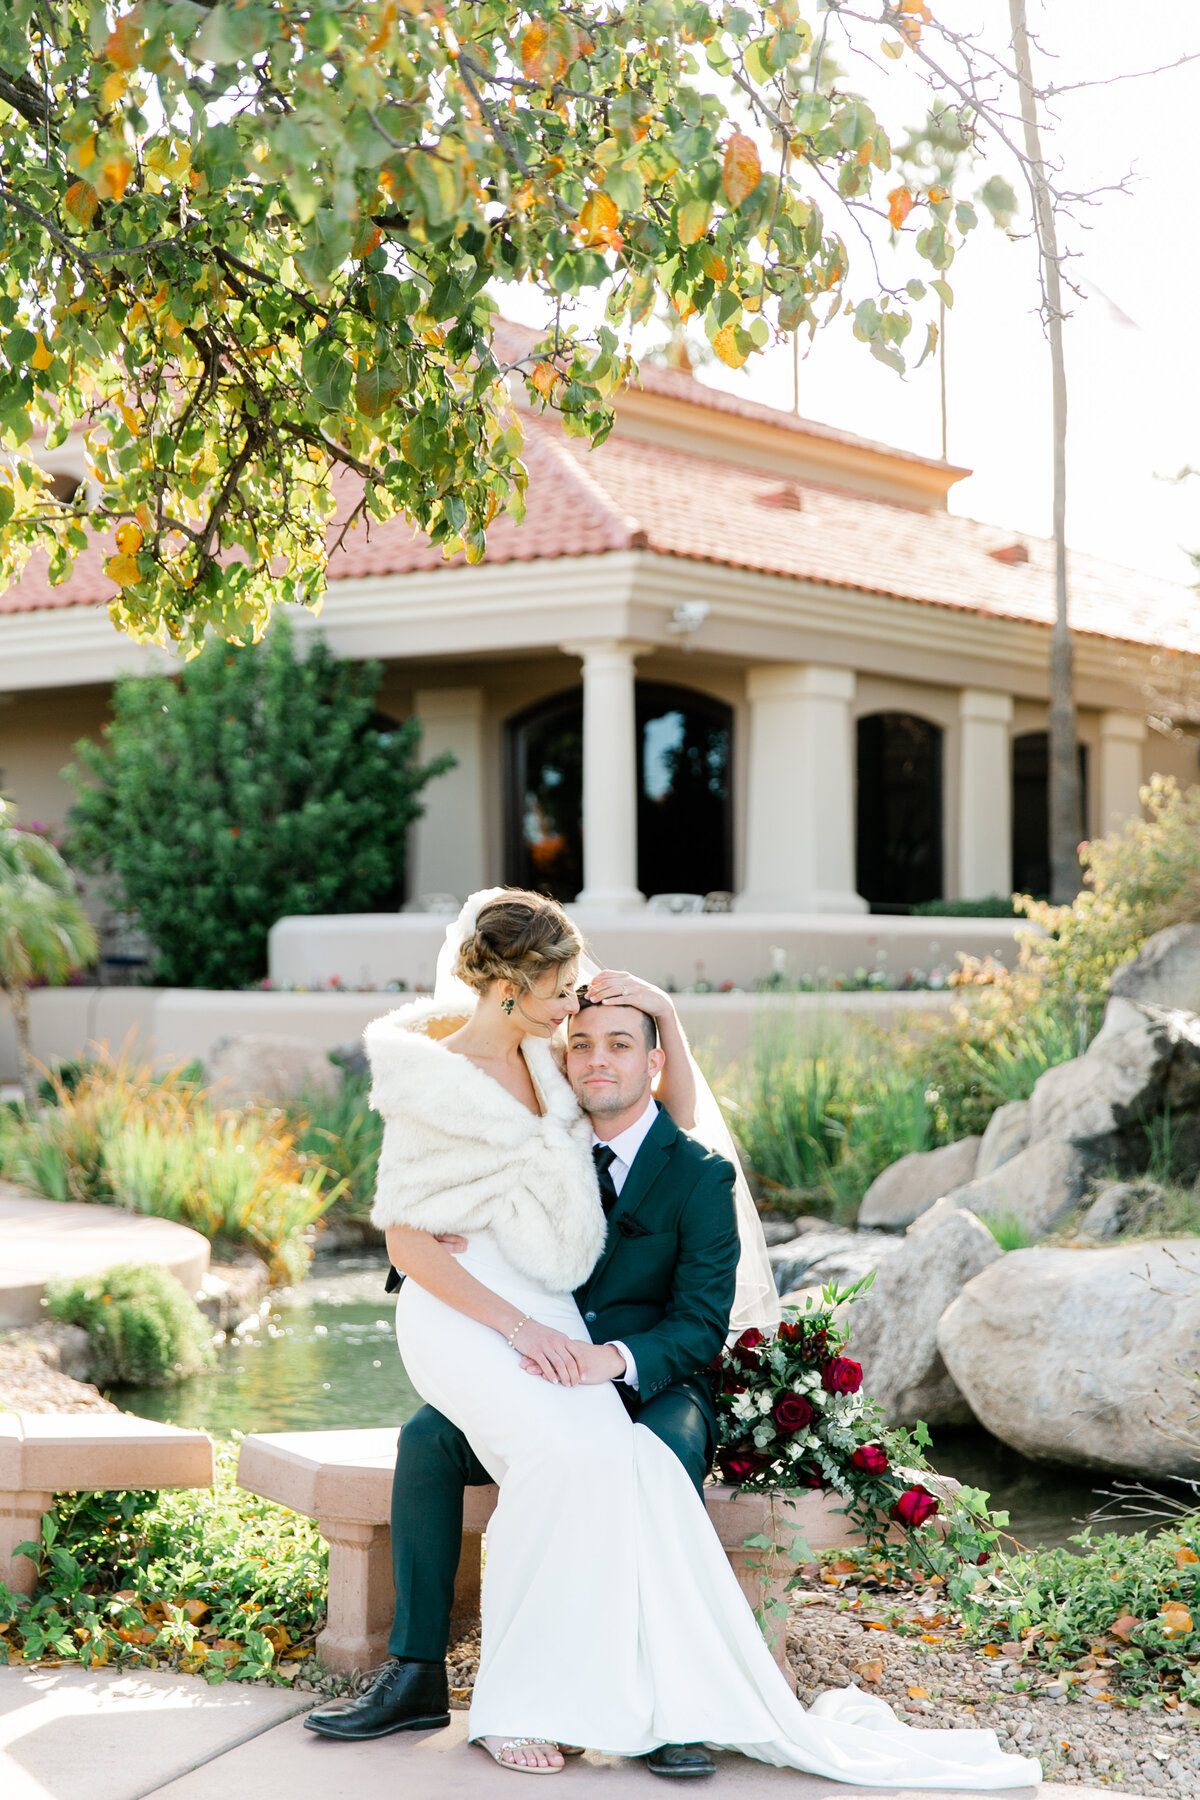 Karlie Colleen Photography - Gilbert Arizona Wedding - Val Vista Lakes - Brynne & Josh-458